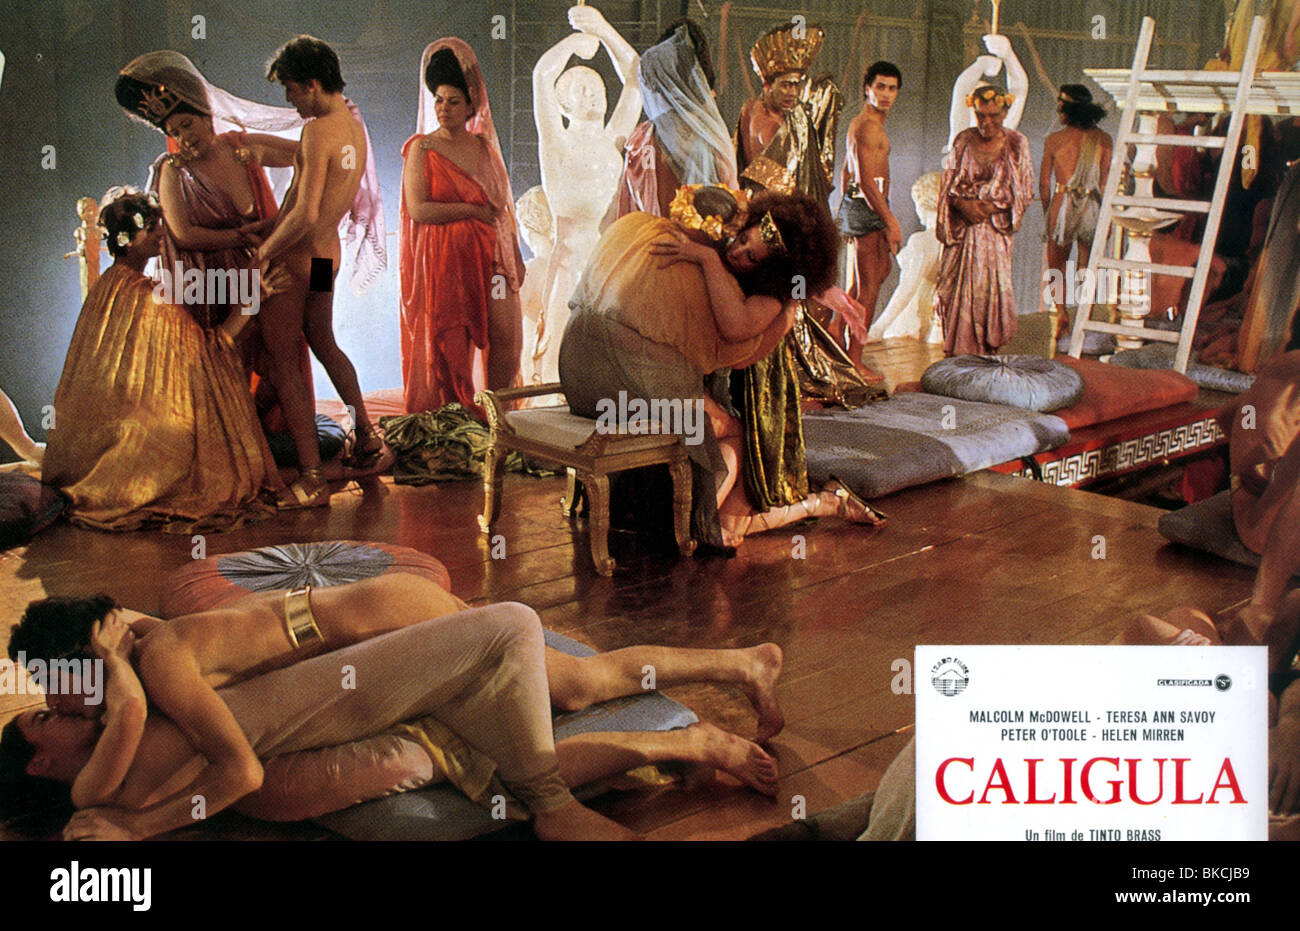 Caligula Film High Resolution Stock Photography and Images - Alamy